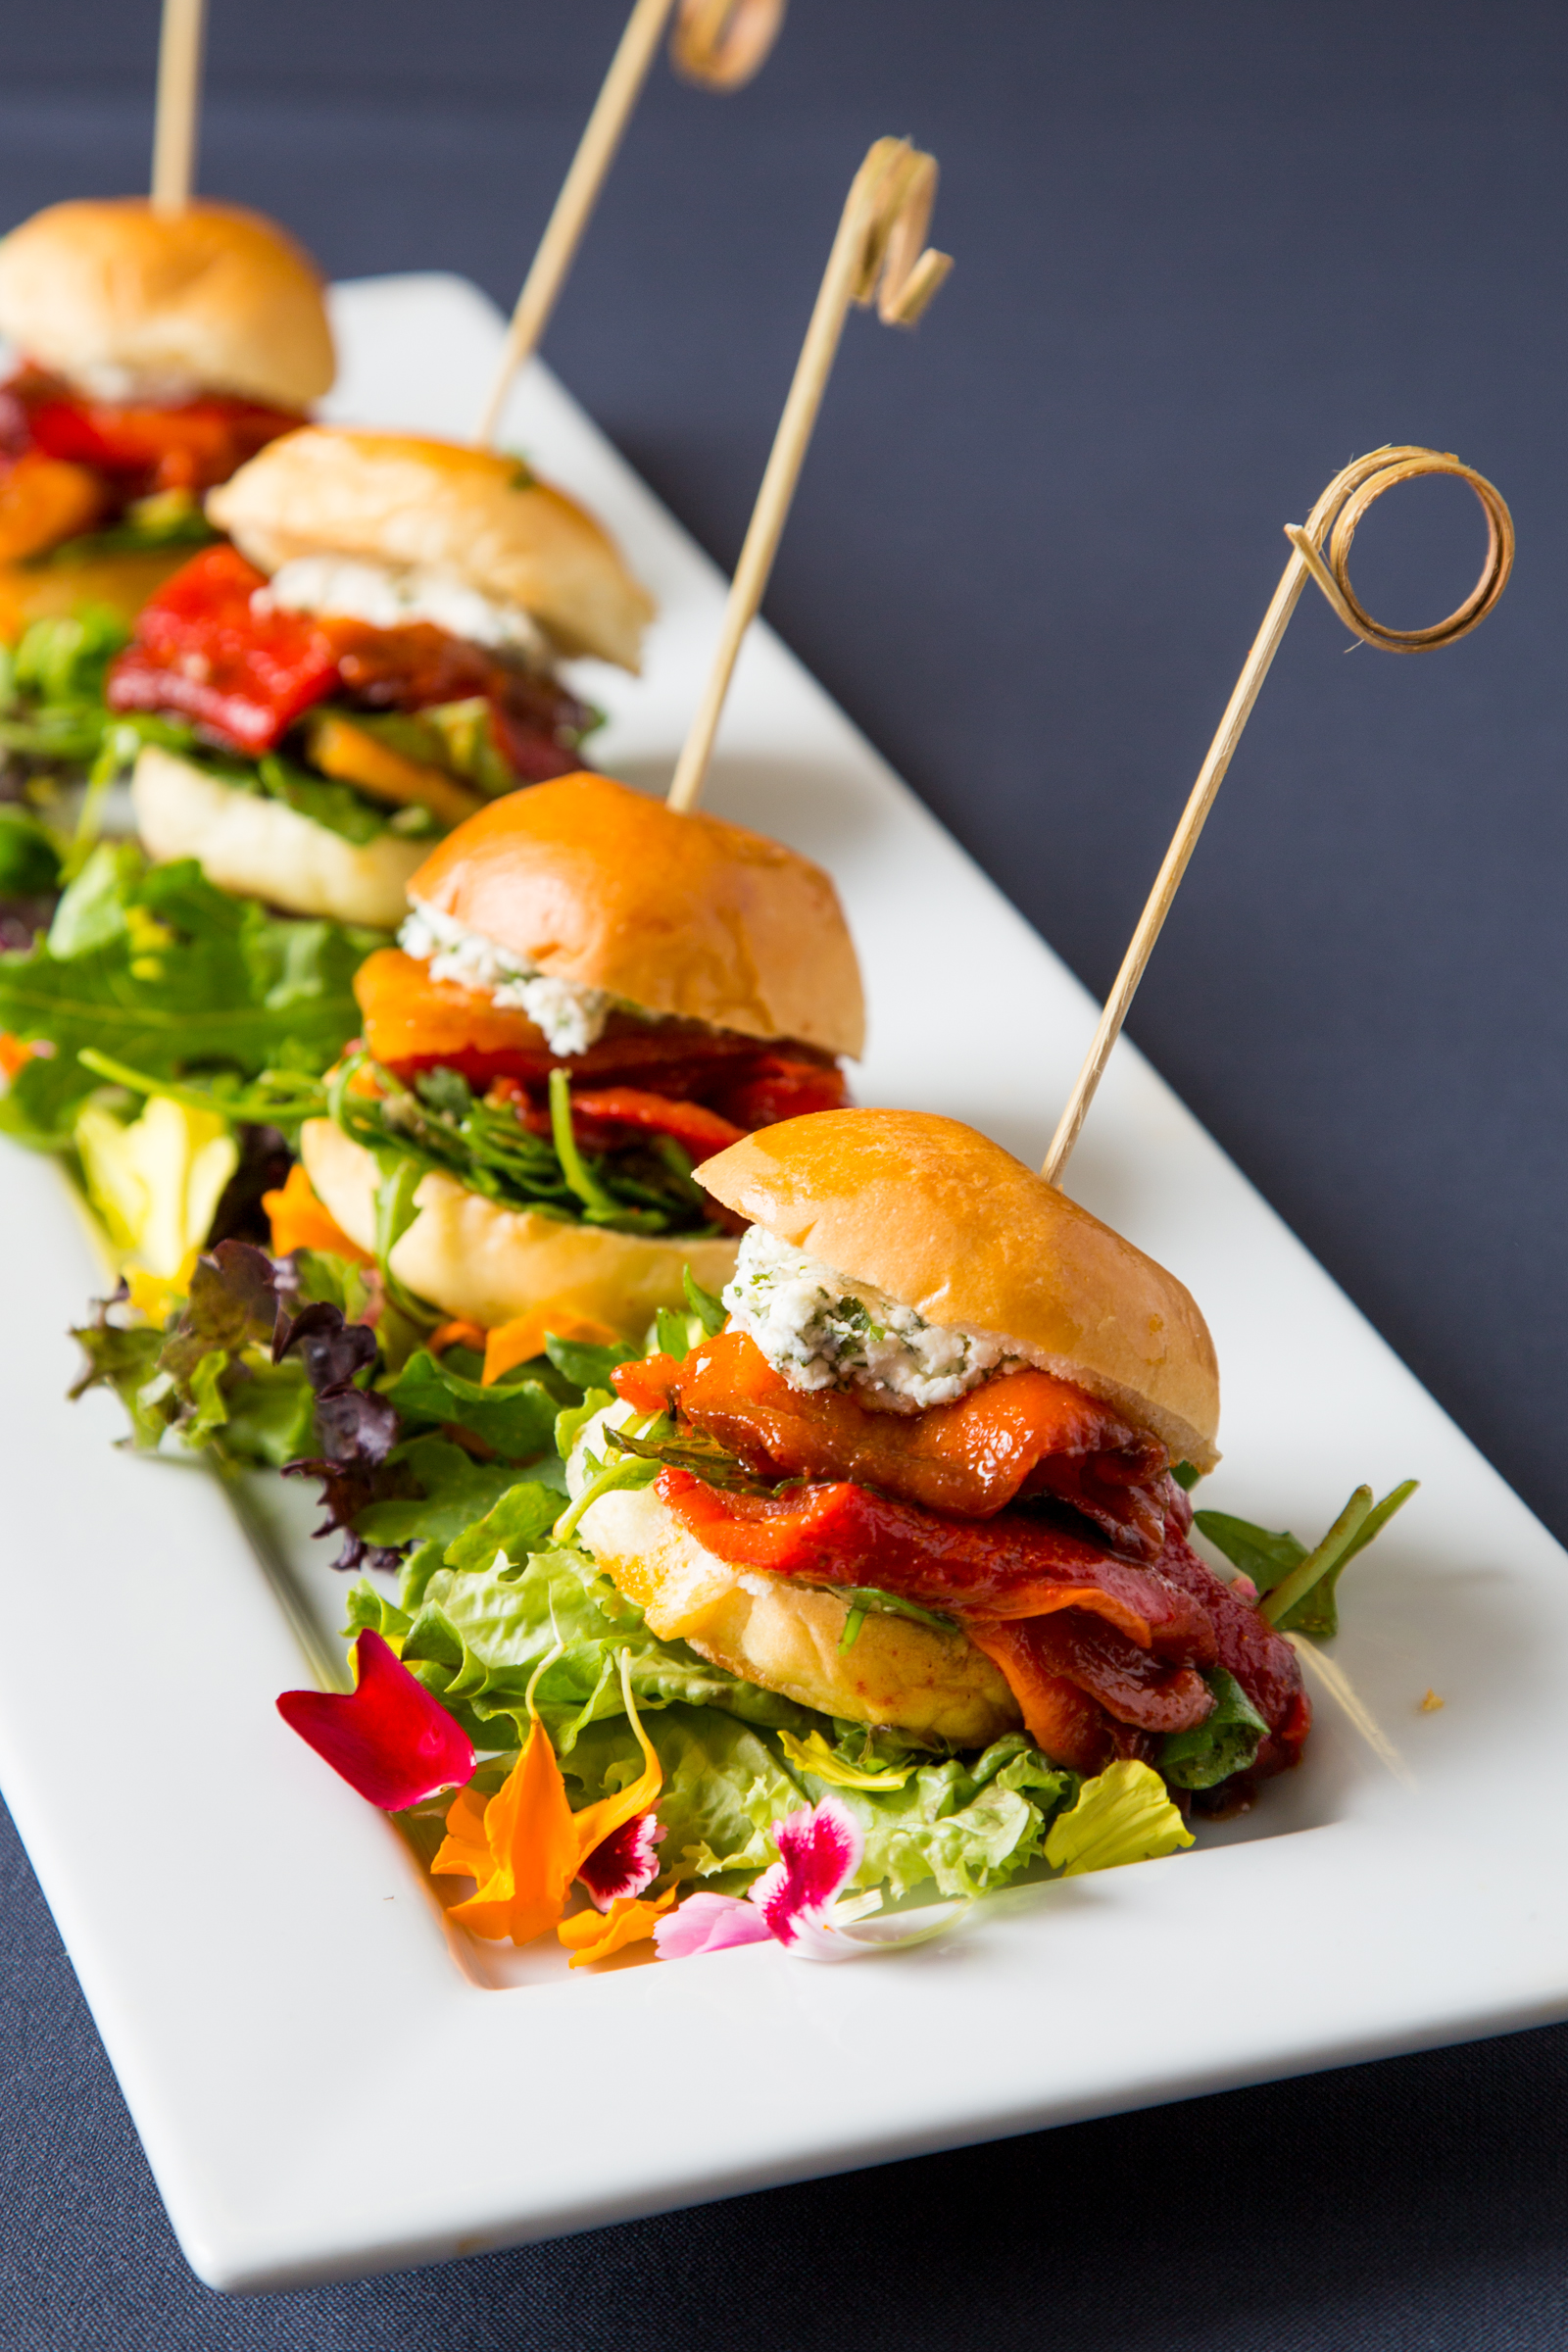 Roasted red pepper sliders